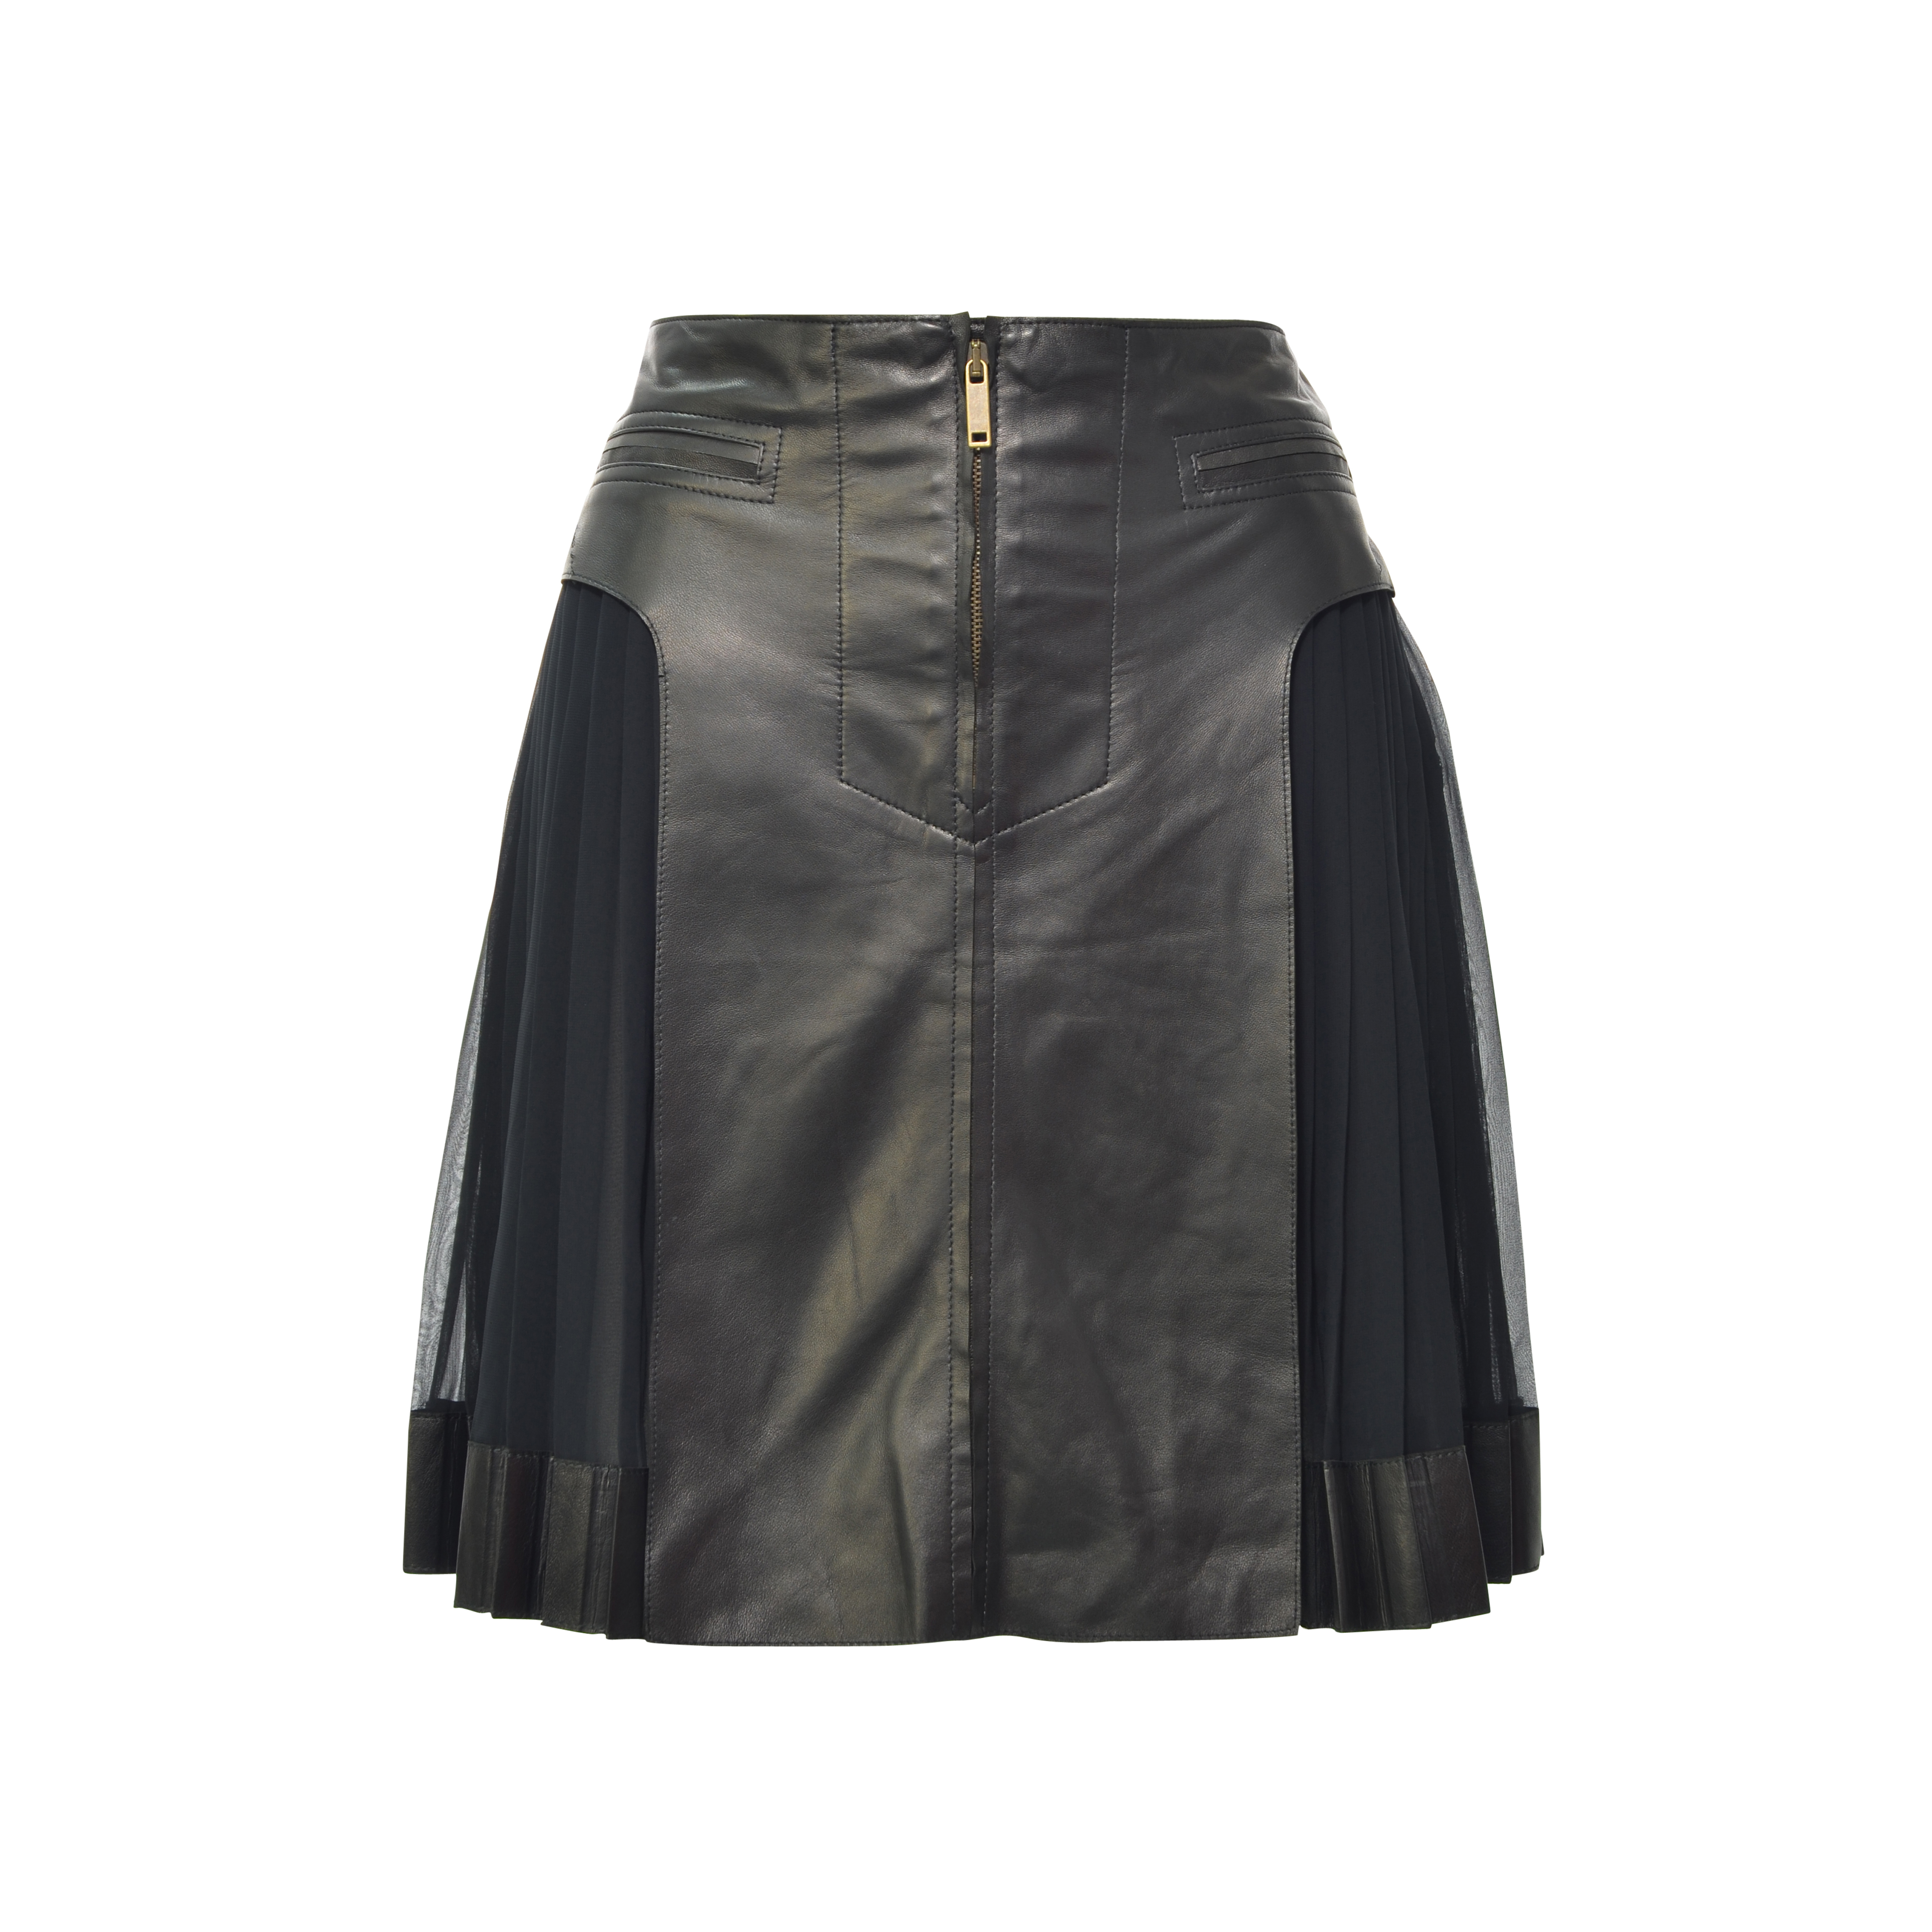 d8456e8fdd Authentic Second Hand Derek Lam Pleated Side Lambskin Skirt (PSS-200-00092)  - THE FIFTH COLLECTION